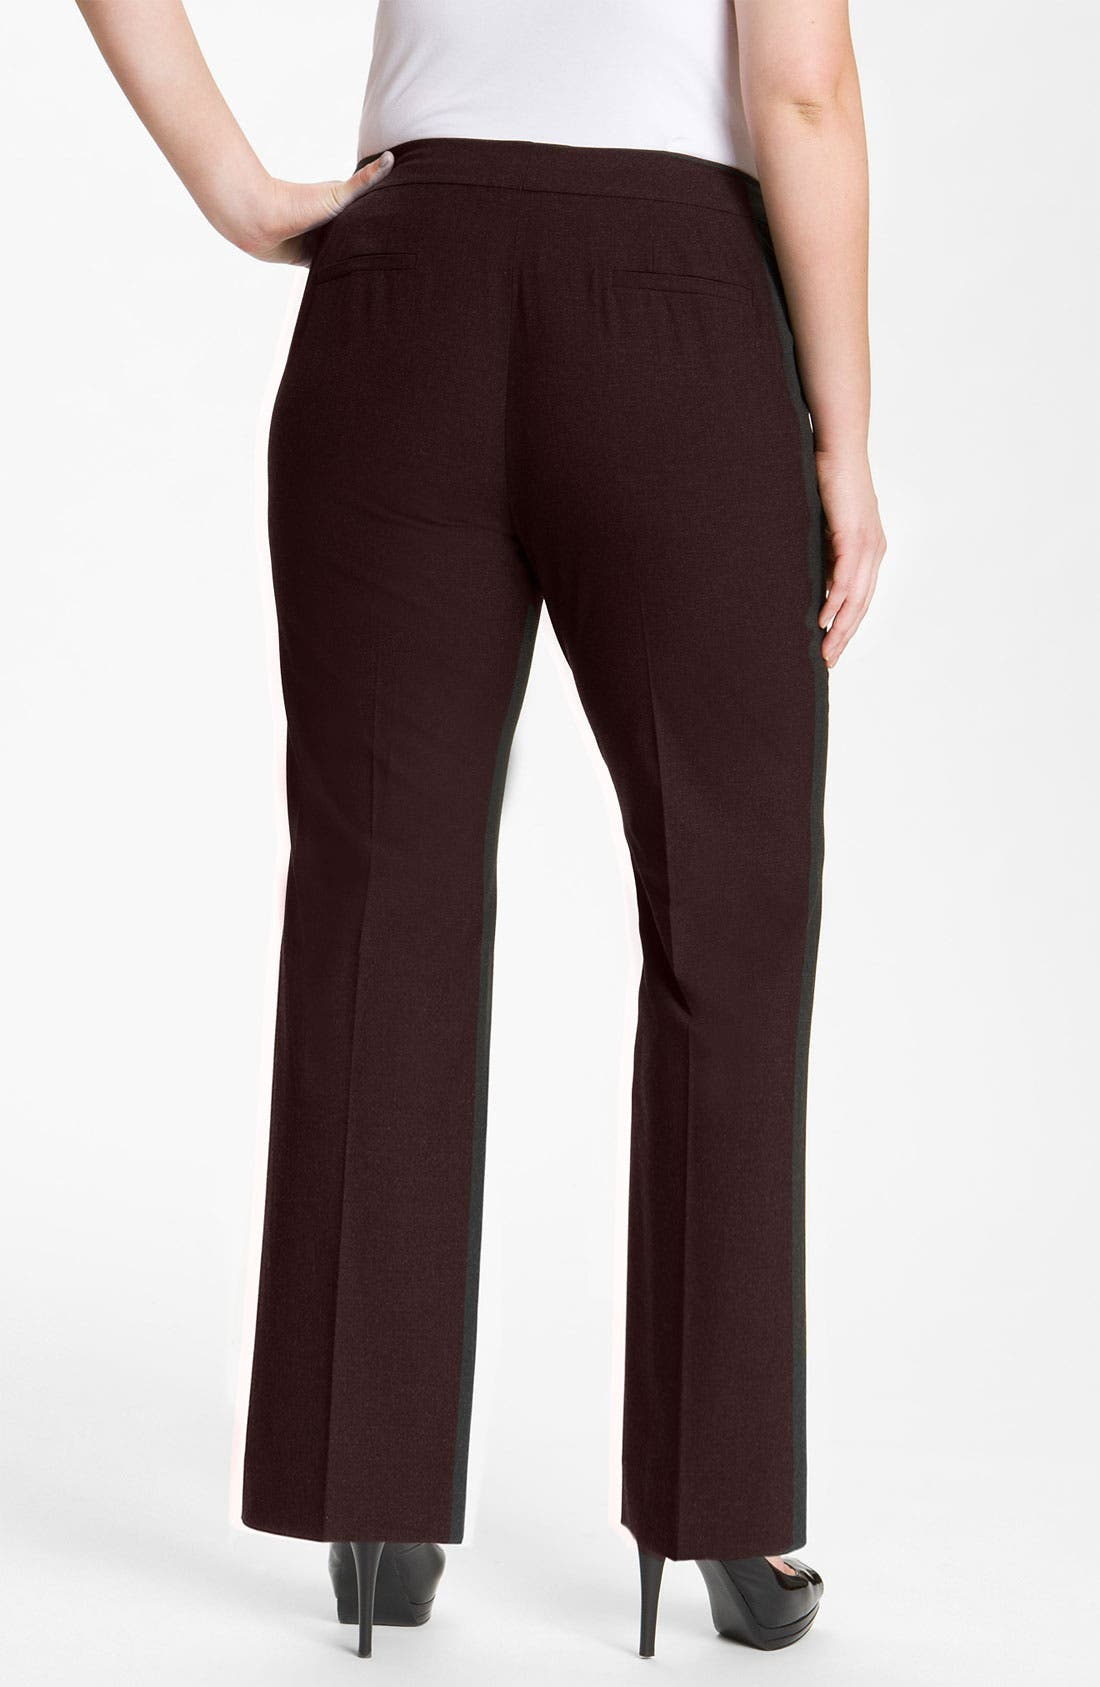 Alternate Image 2  - Sejour 'Ela' Curvy Fit Pants (Plus Size & Petite Plus)